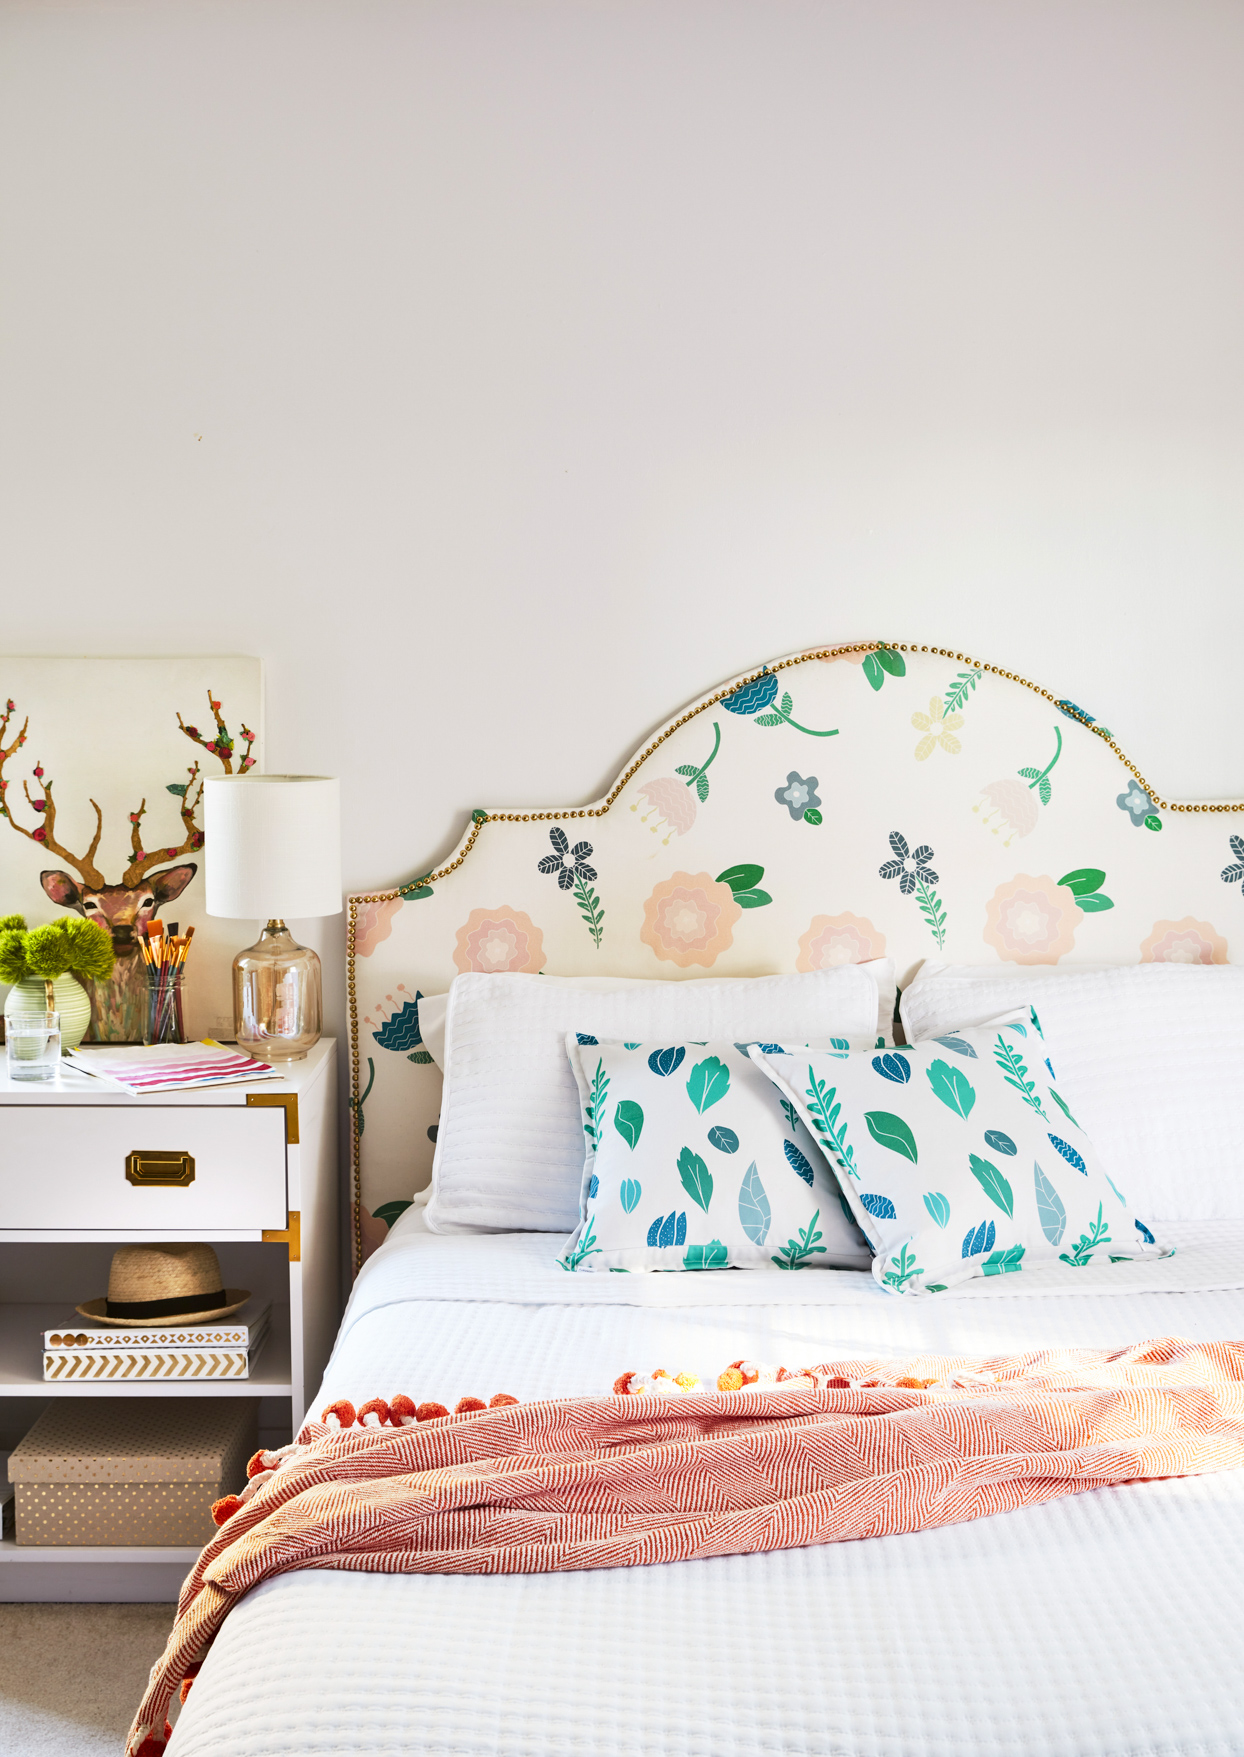 pastel bedroom with patterned headboard and pillows